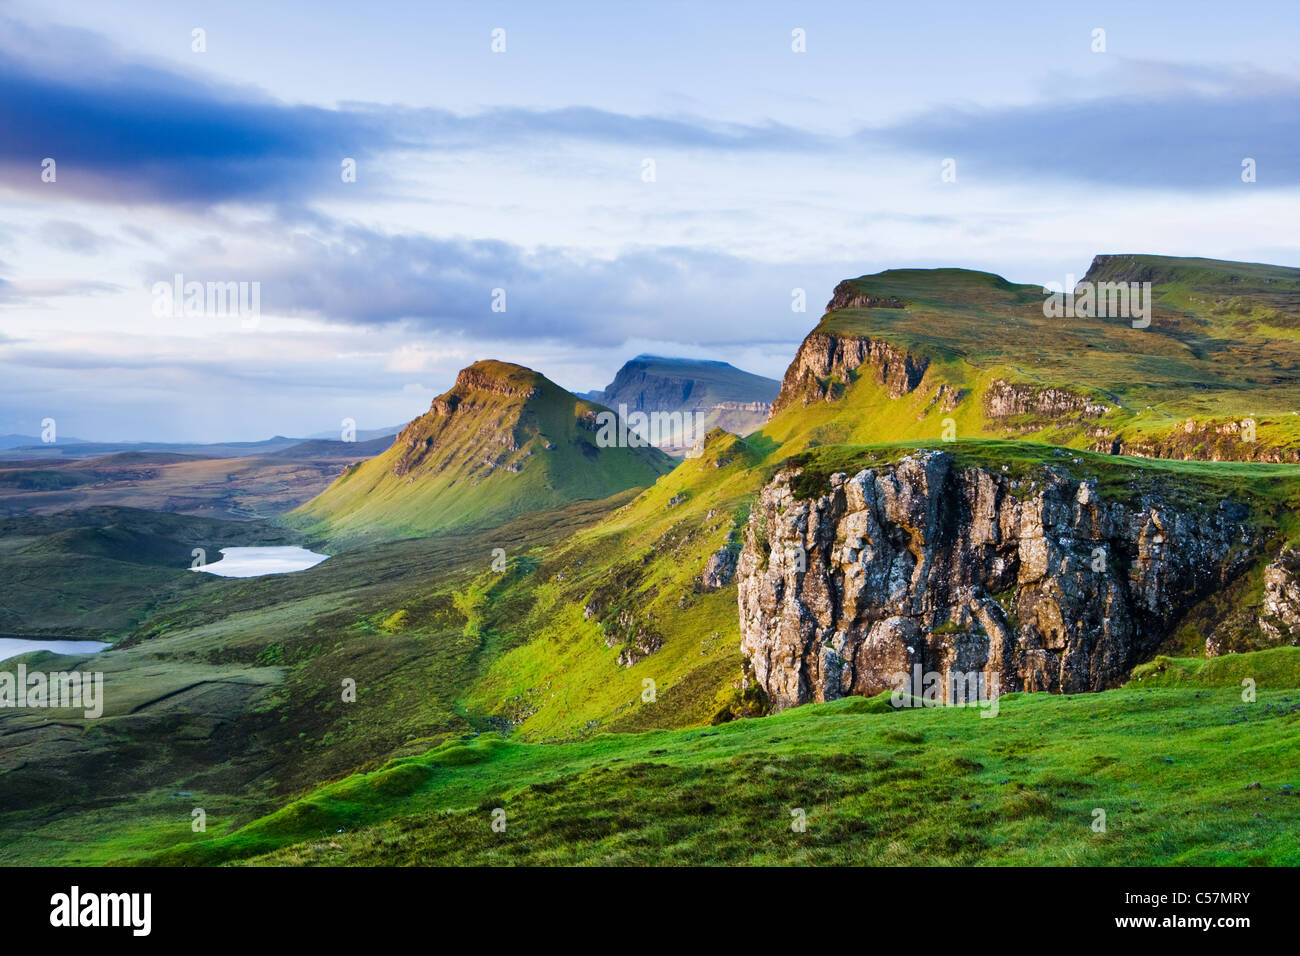 The Quiraing, Isle of Skye, Scotland, UK. - Stock Image